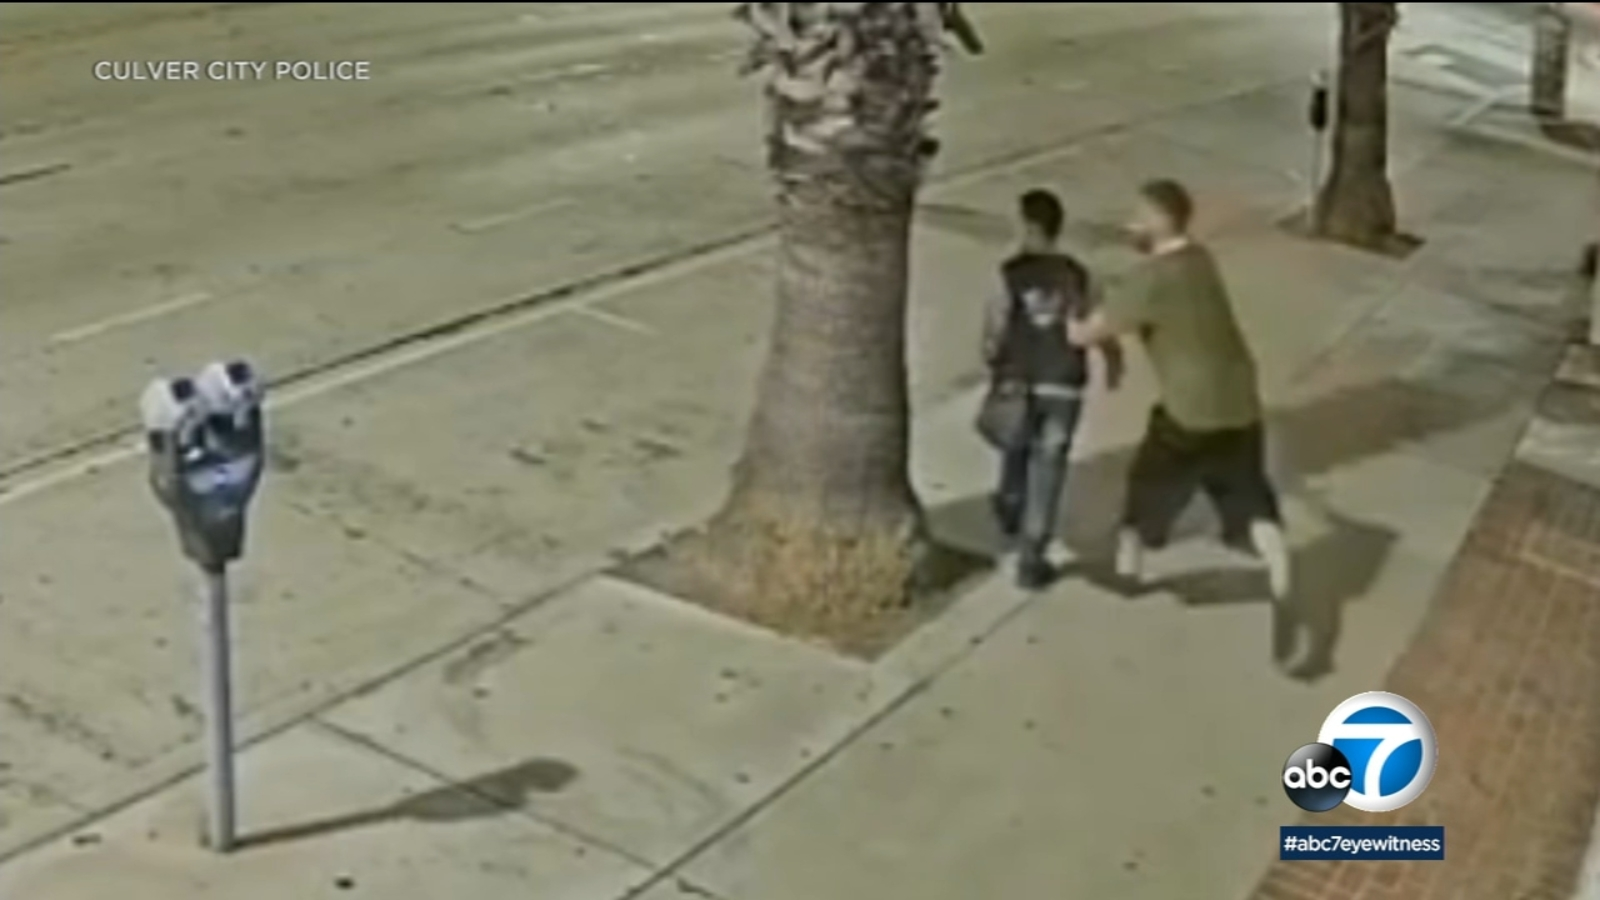 Man yells racial slur, knocks woman to ground in suspected hate crime in Culver City